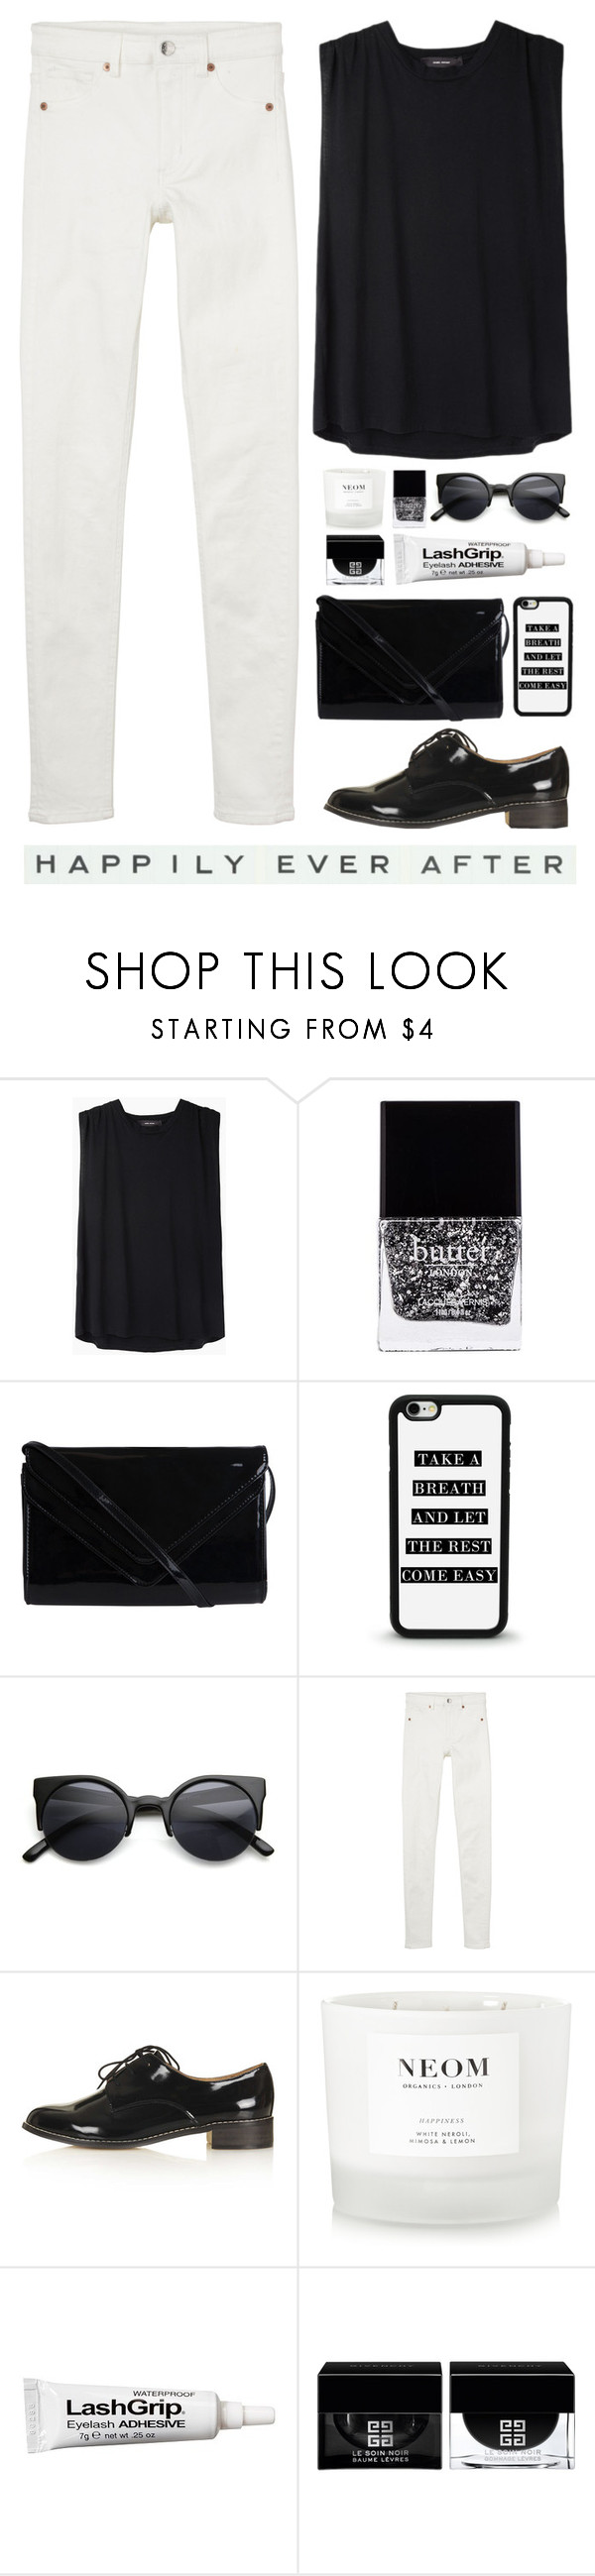 """Happily Ever After"" by lolipop132 ❤ liked on Polyvore featuring Isabel Marant, Butter London, Pieces, Retrò, Monki, Topshop, NEOM Organics, Ardell, Givenchy and Vintage Playing Cards"